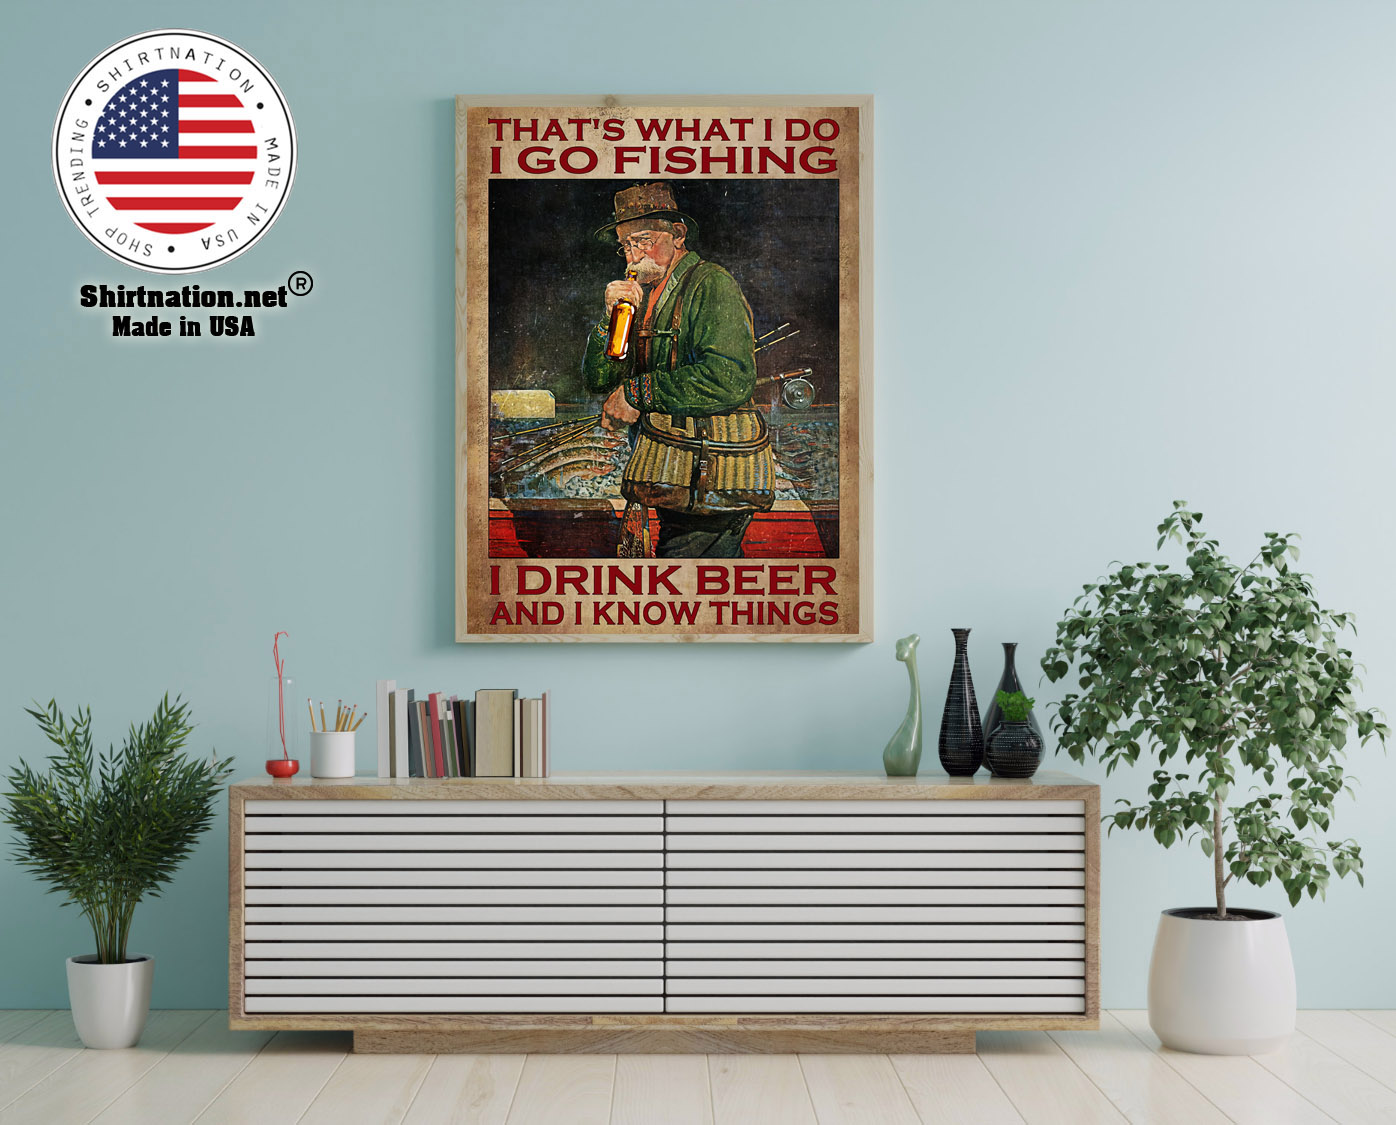 I go fishing I drink beer and I know things poster 12